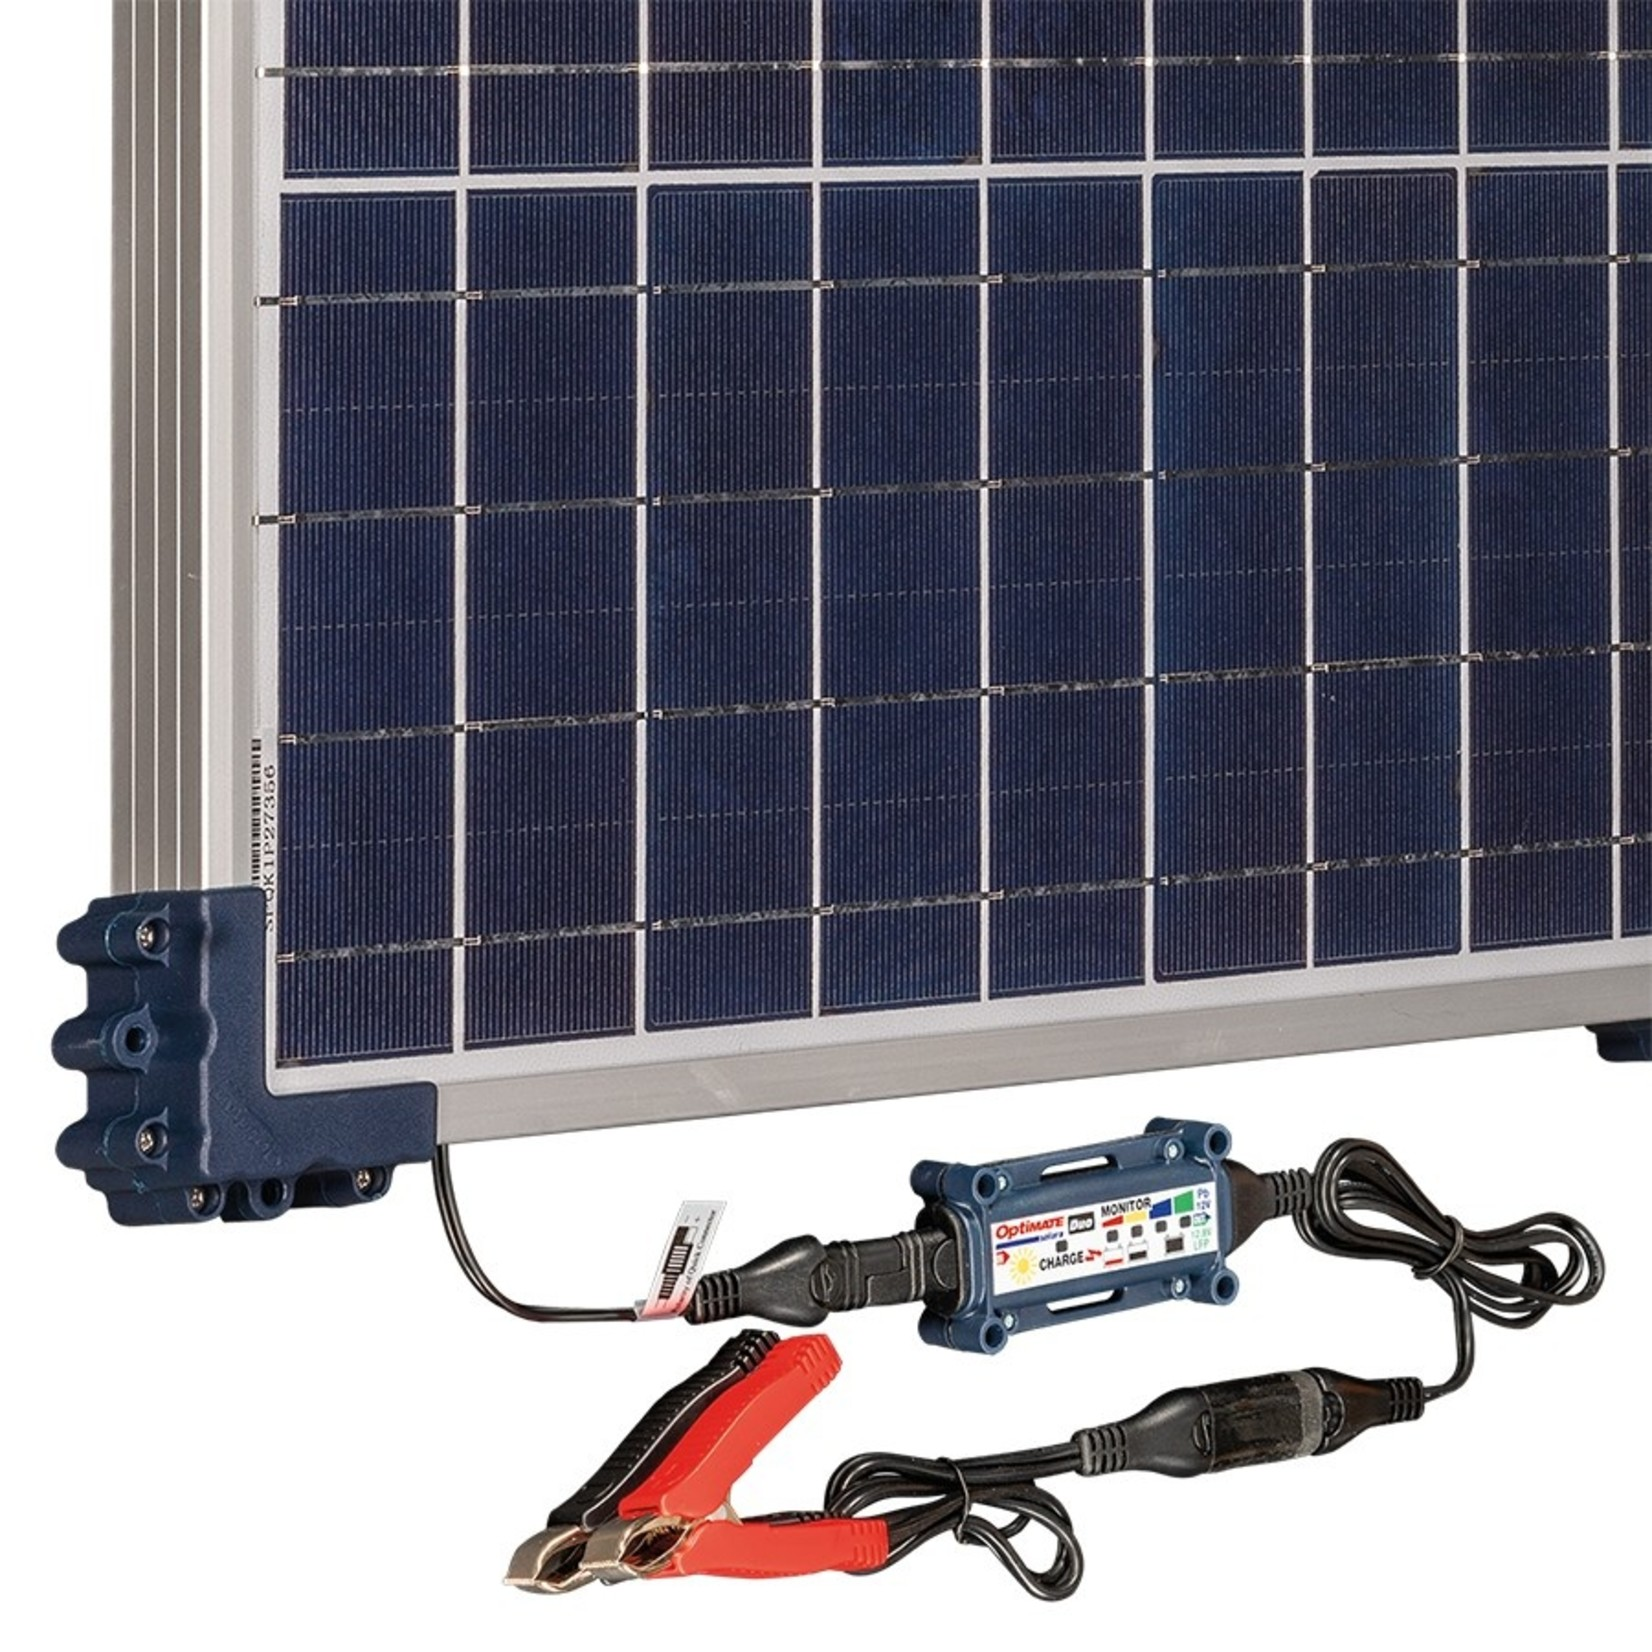 OptiMate DUO Solar 40W - Acculader